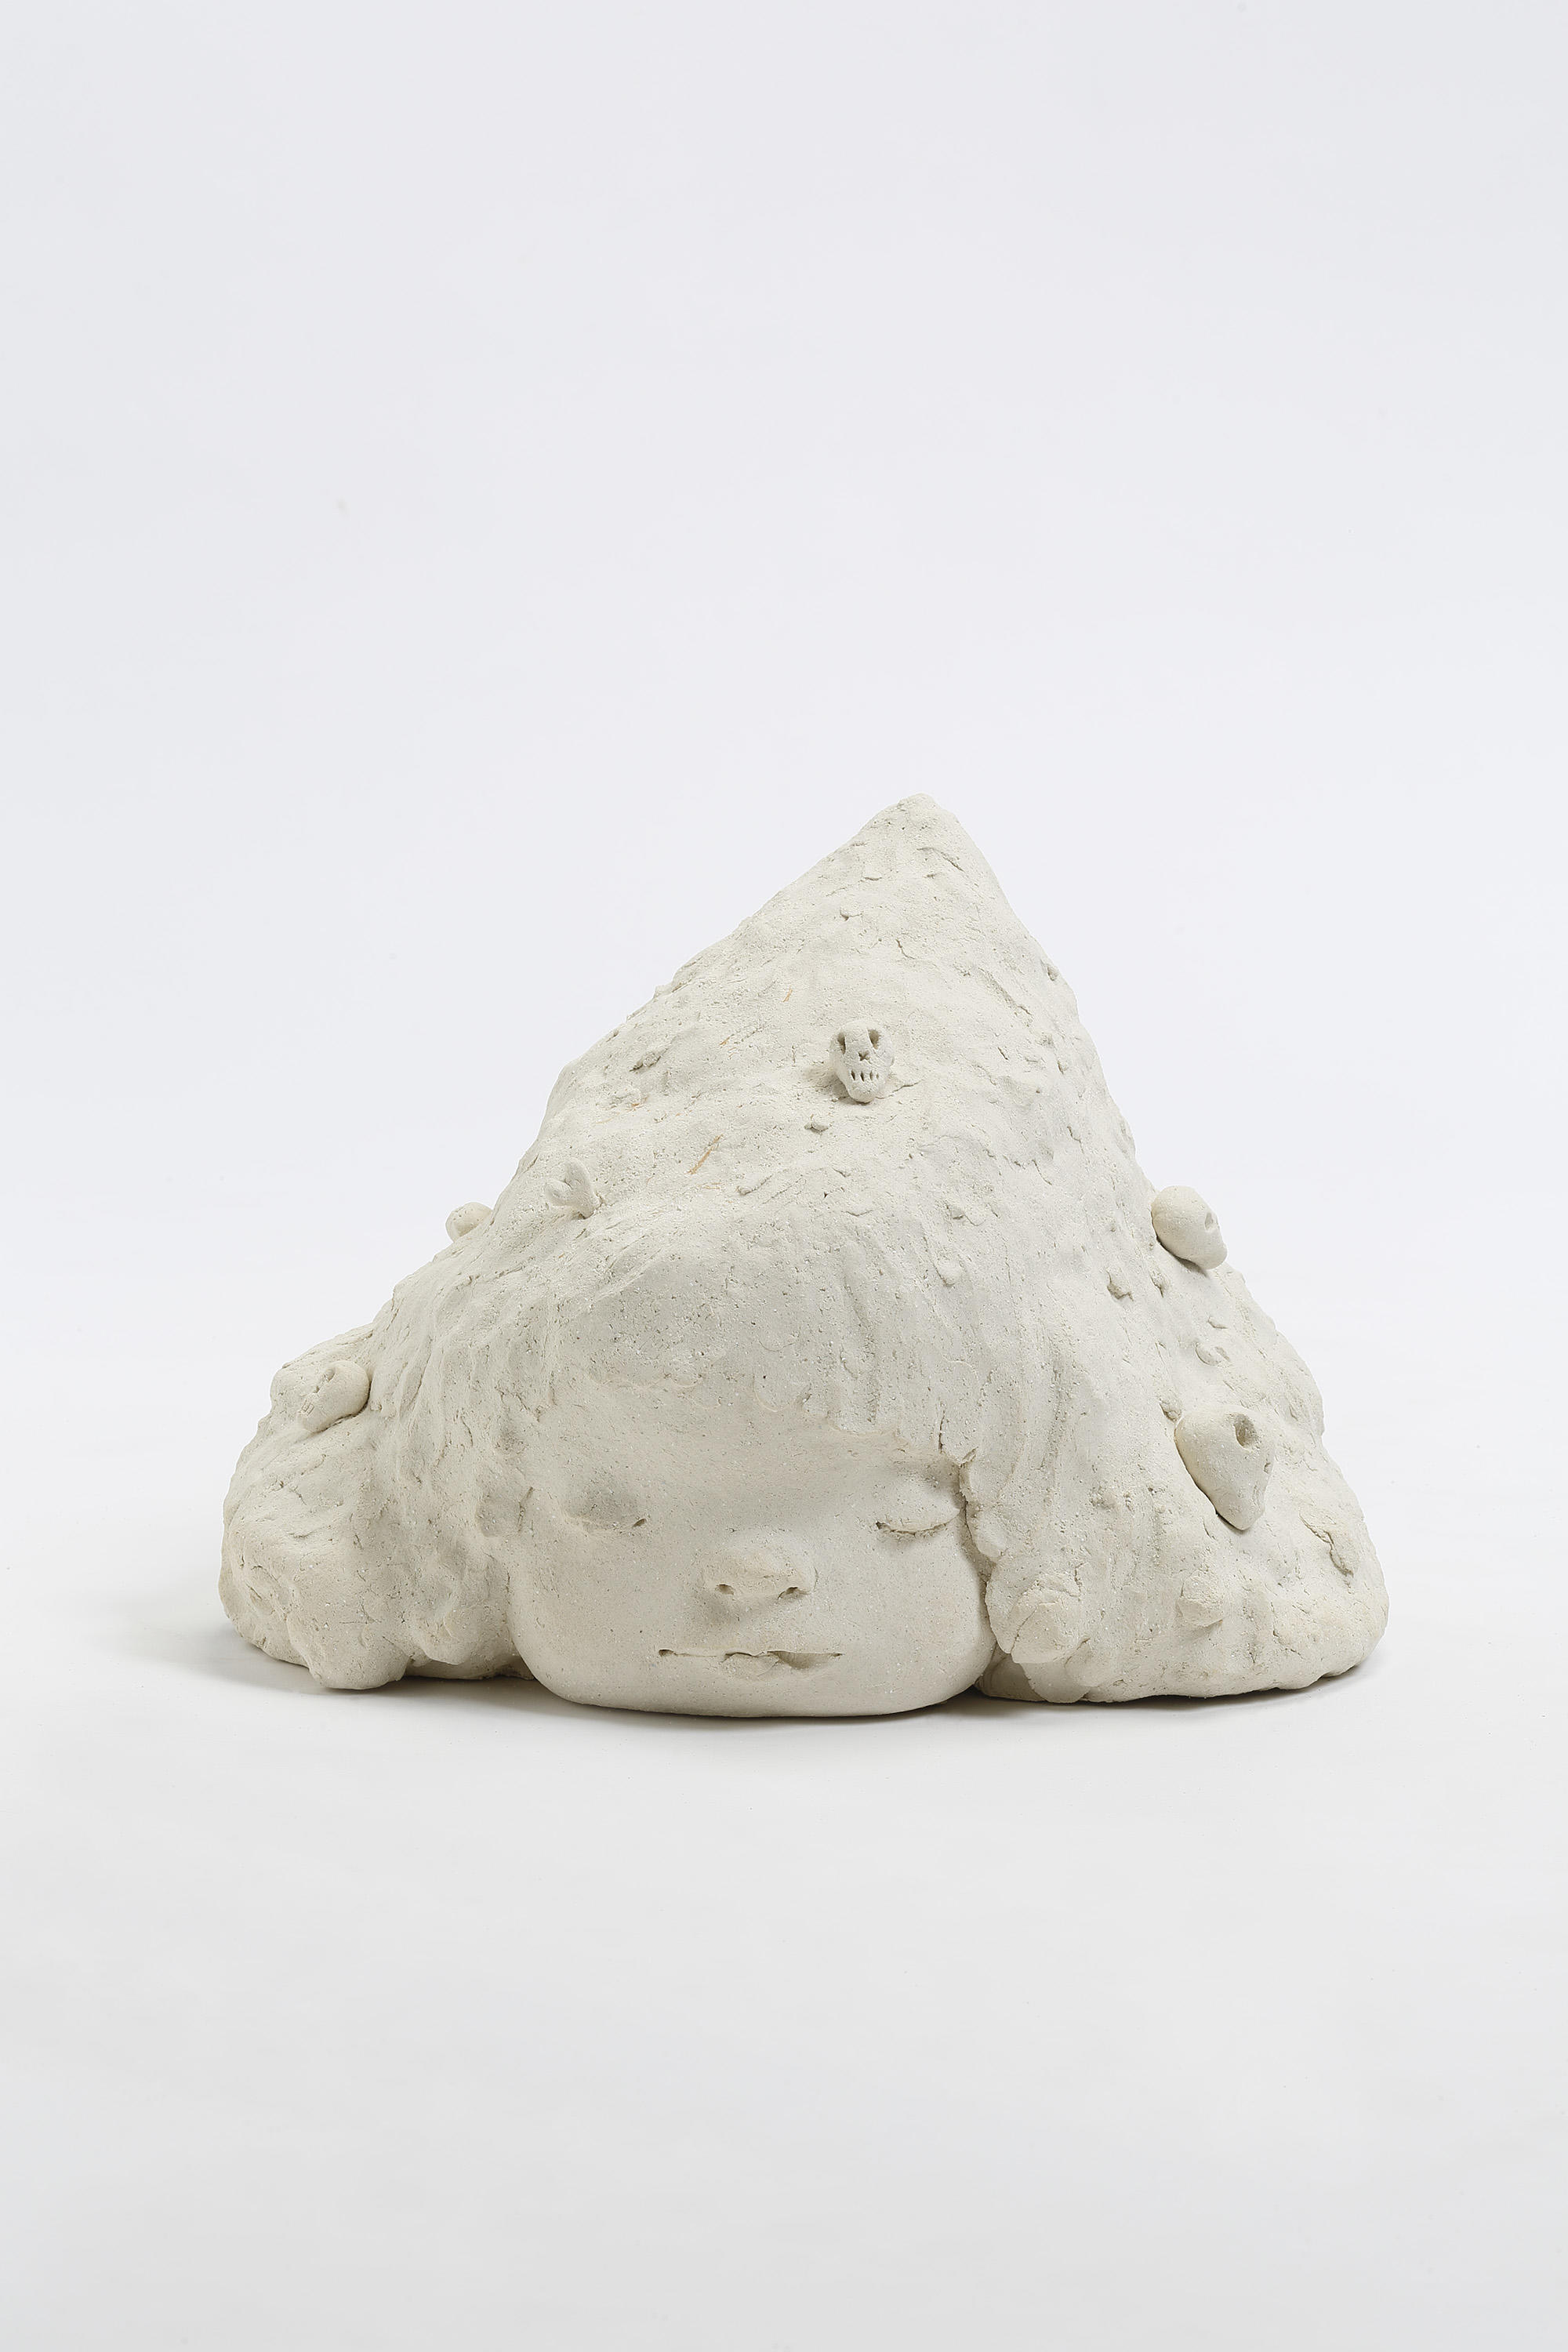 "Yoshitomo Nara, Ahunrupar, 2018,  ceramic,  12-11/16"" x 17-7/16"" x 15-1/4"" (32.2 cm x 44.3 cm x 38.7 cm),  SCULPTURE,  No. 68827, view 3,  Alt # C-2018-030,  Format of original photography: hi-res TIFF"